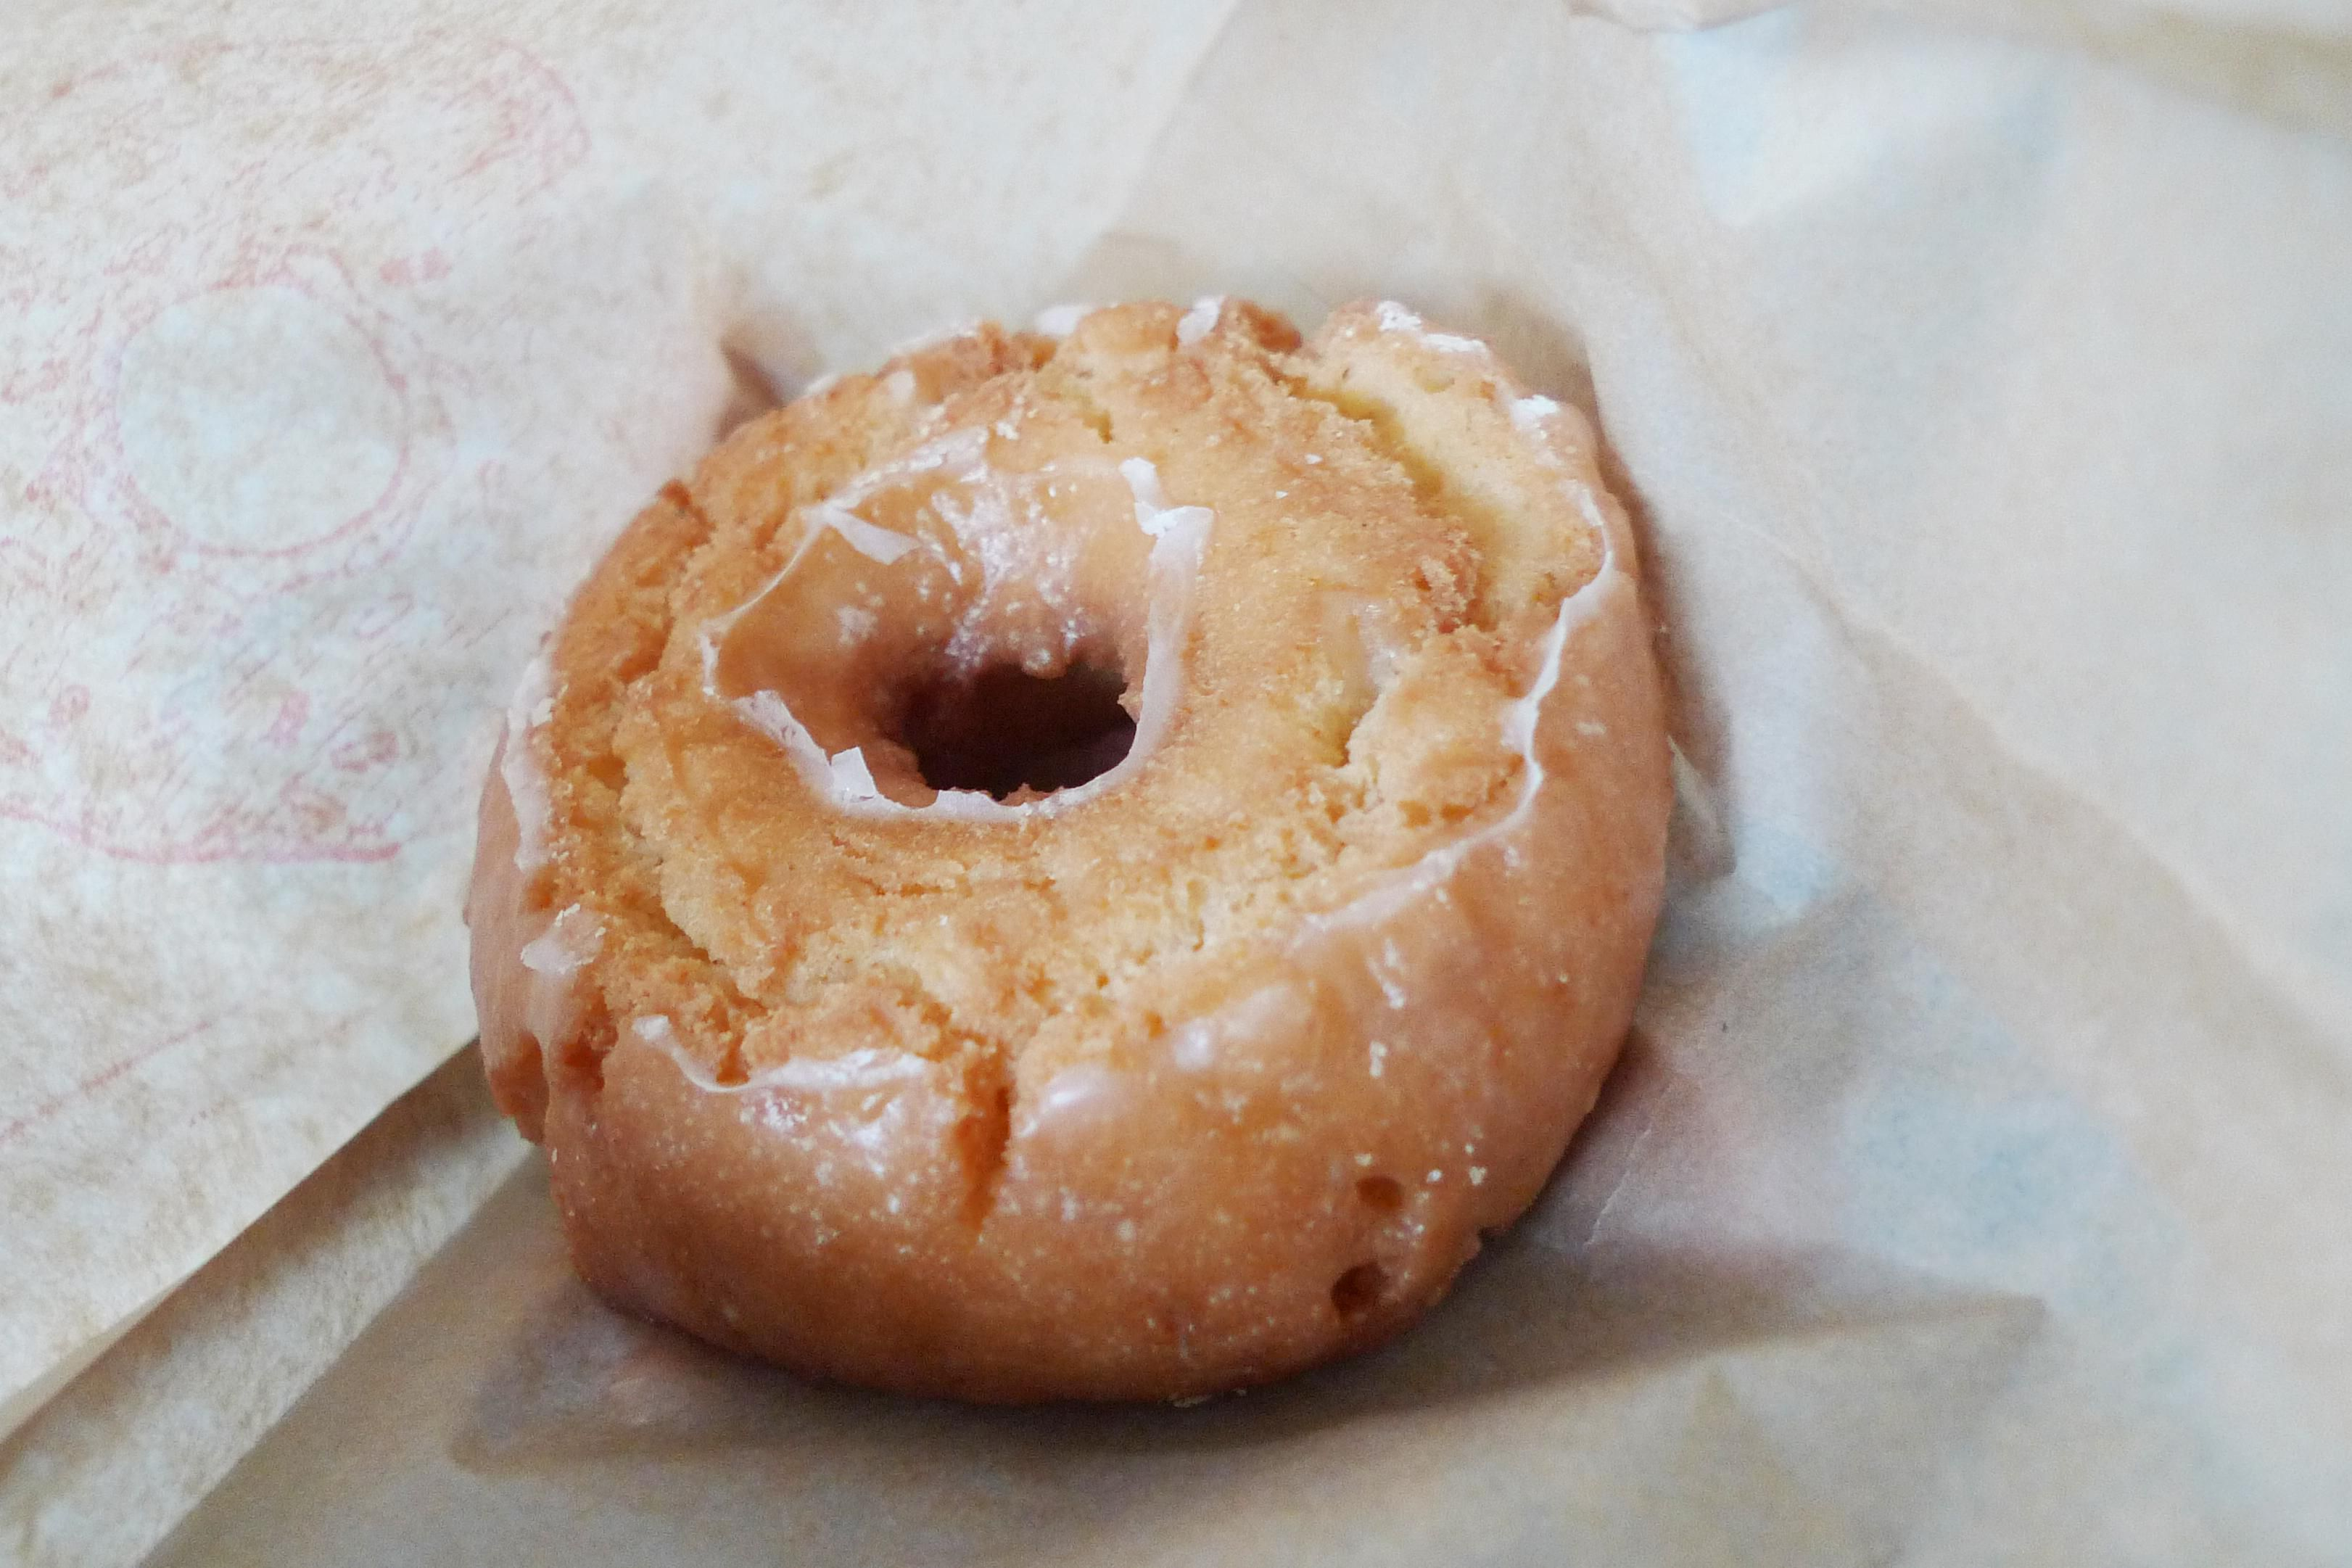 Hostess old fashioned glazed donuts 32